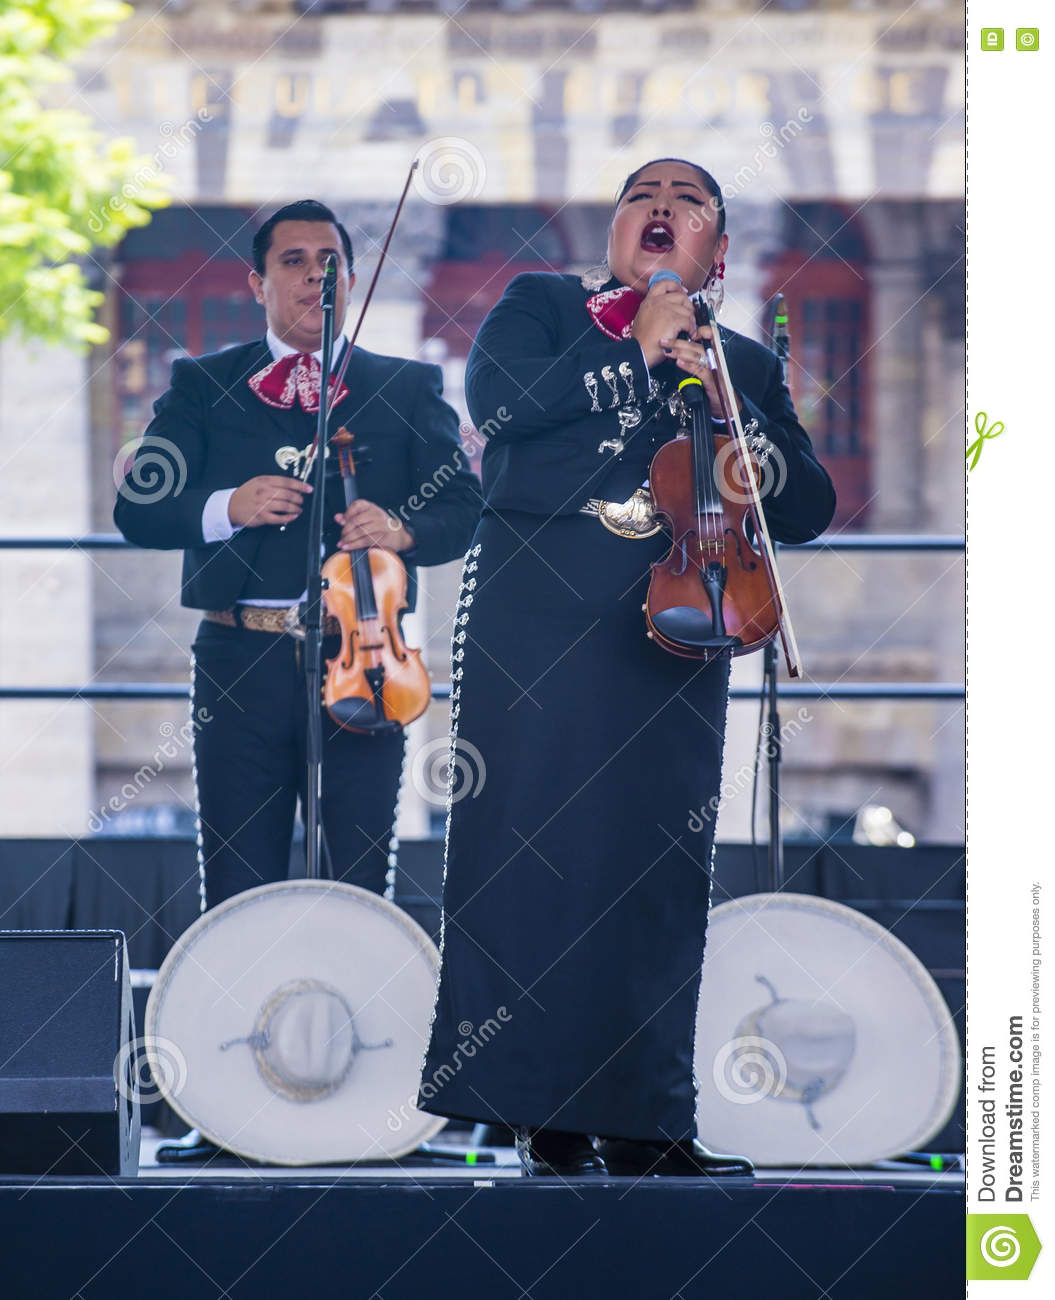 Het internationale festival van Mariachi & Charros-